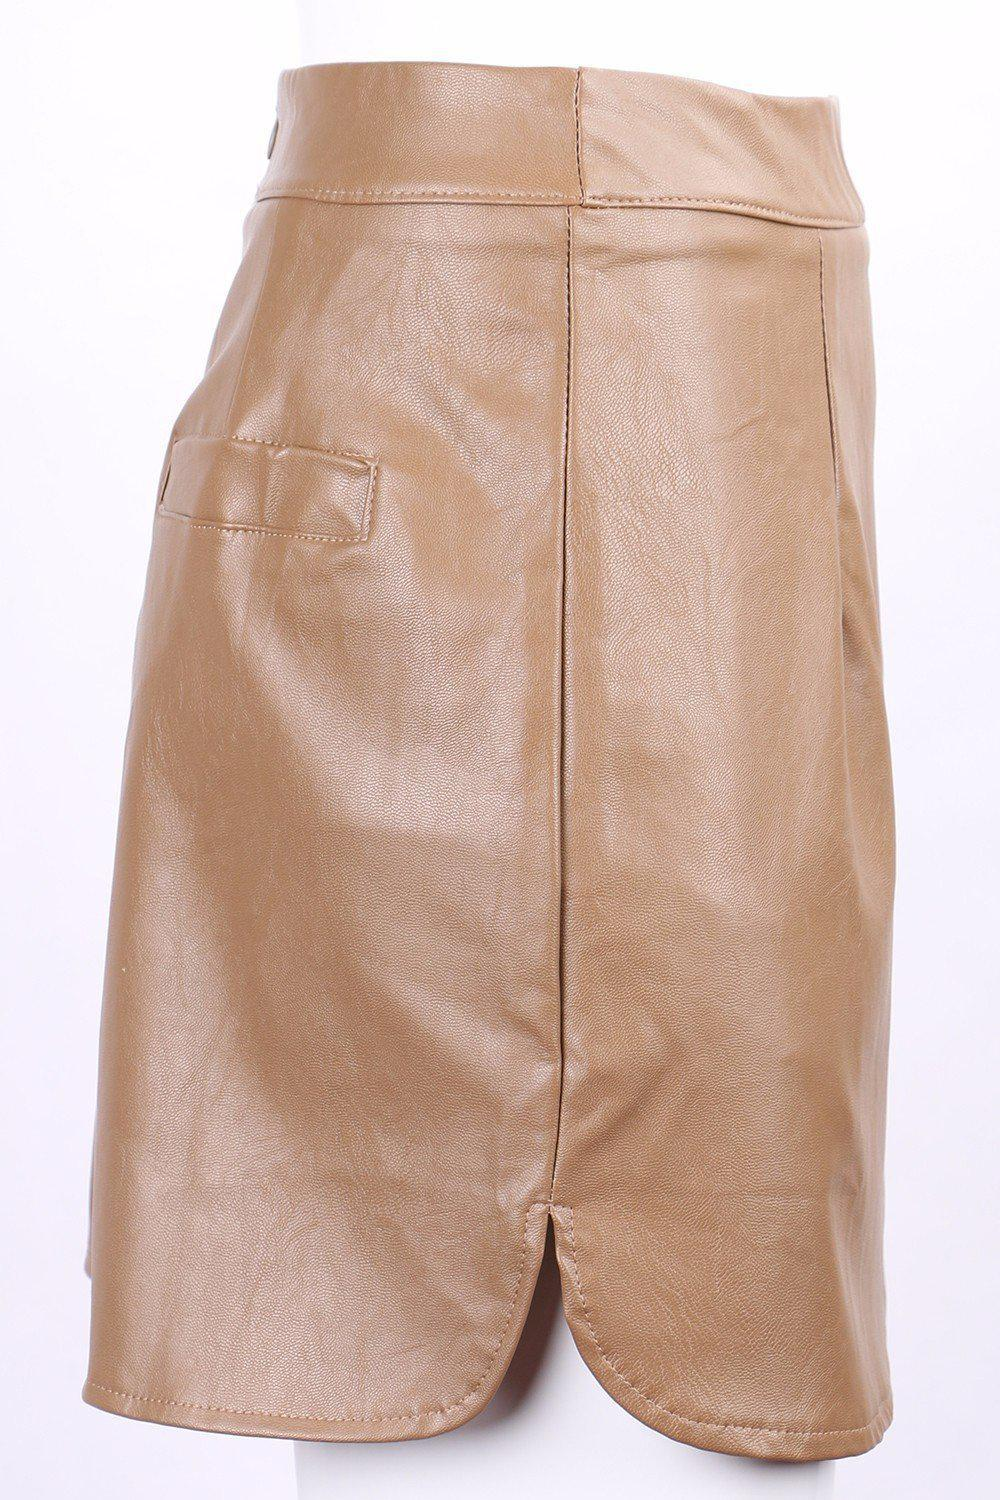 Sexy Vintage Leather High Waist Skirts-Dress-SheSimplyShops